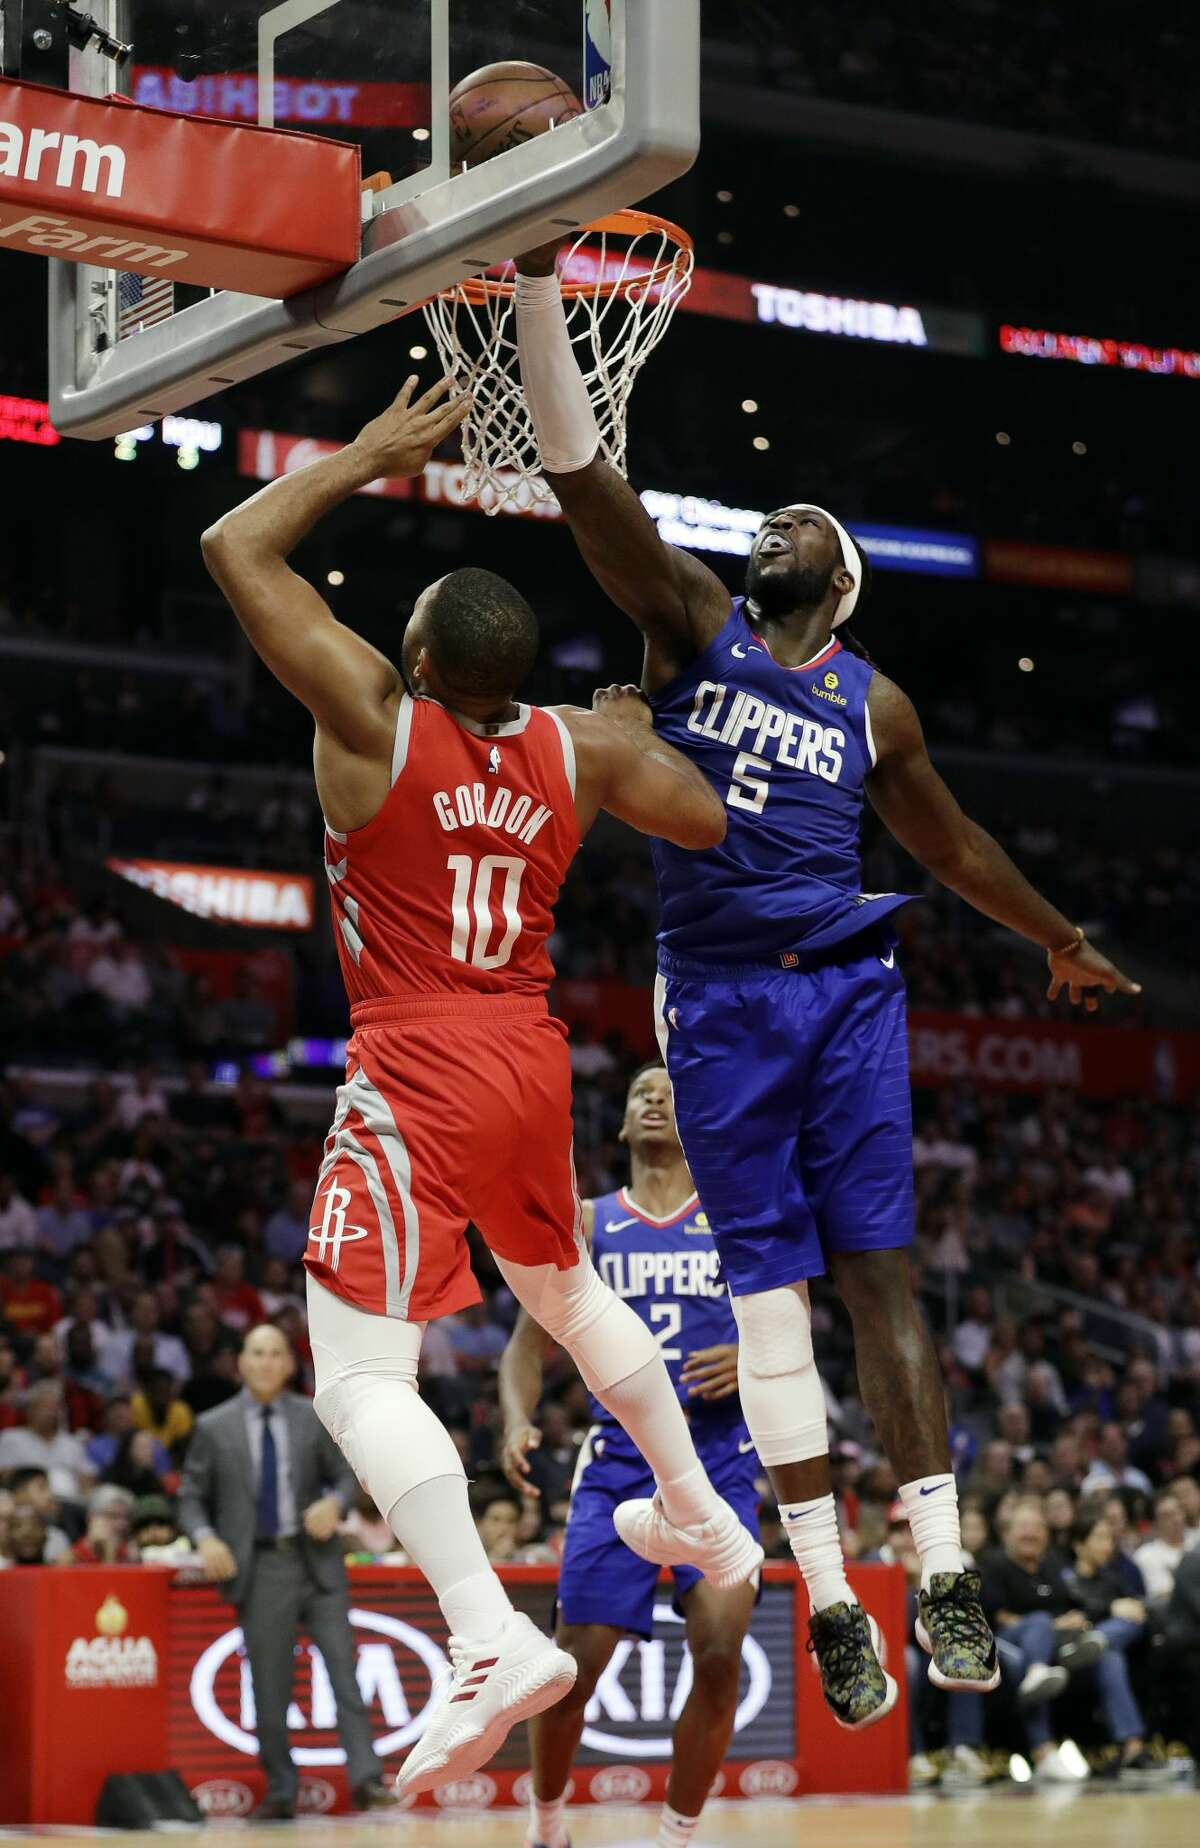 Los Angeles Clippers' Montrezl Harrell (5) blocks a shot from Houston Rockets' Eric Gordon (10) during the second half of an NBA basketball game Sunday, Oct. 21, 2018, in Los Angeles. The Clippers won, 115-112. (AP Photo/Marcio Jose Sanchez)